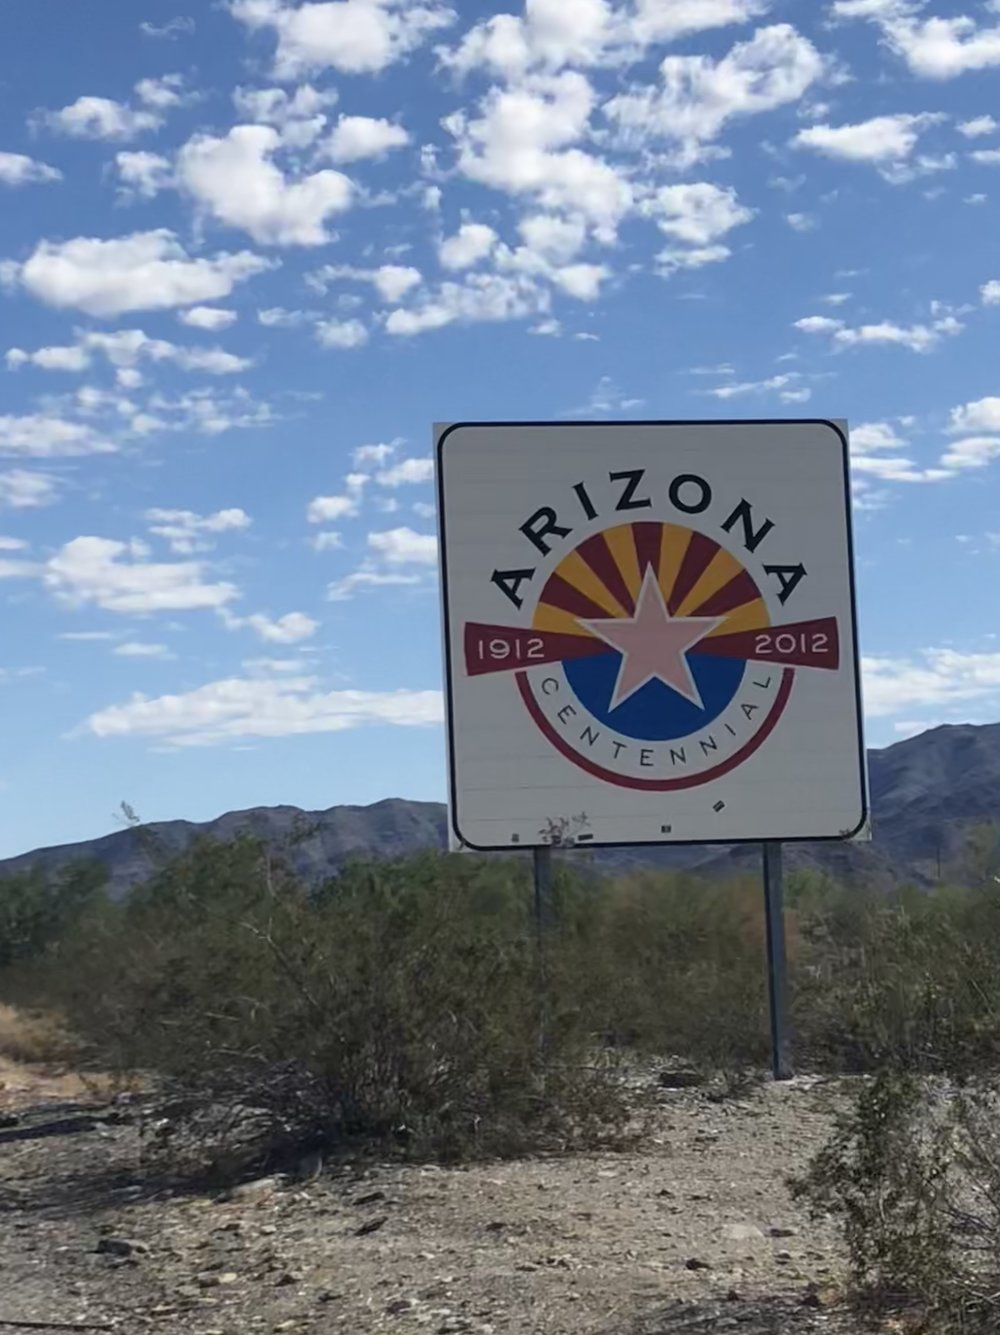 Crossing the boarder into Arizona.